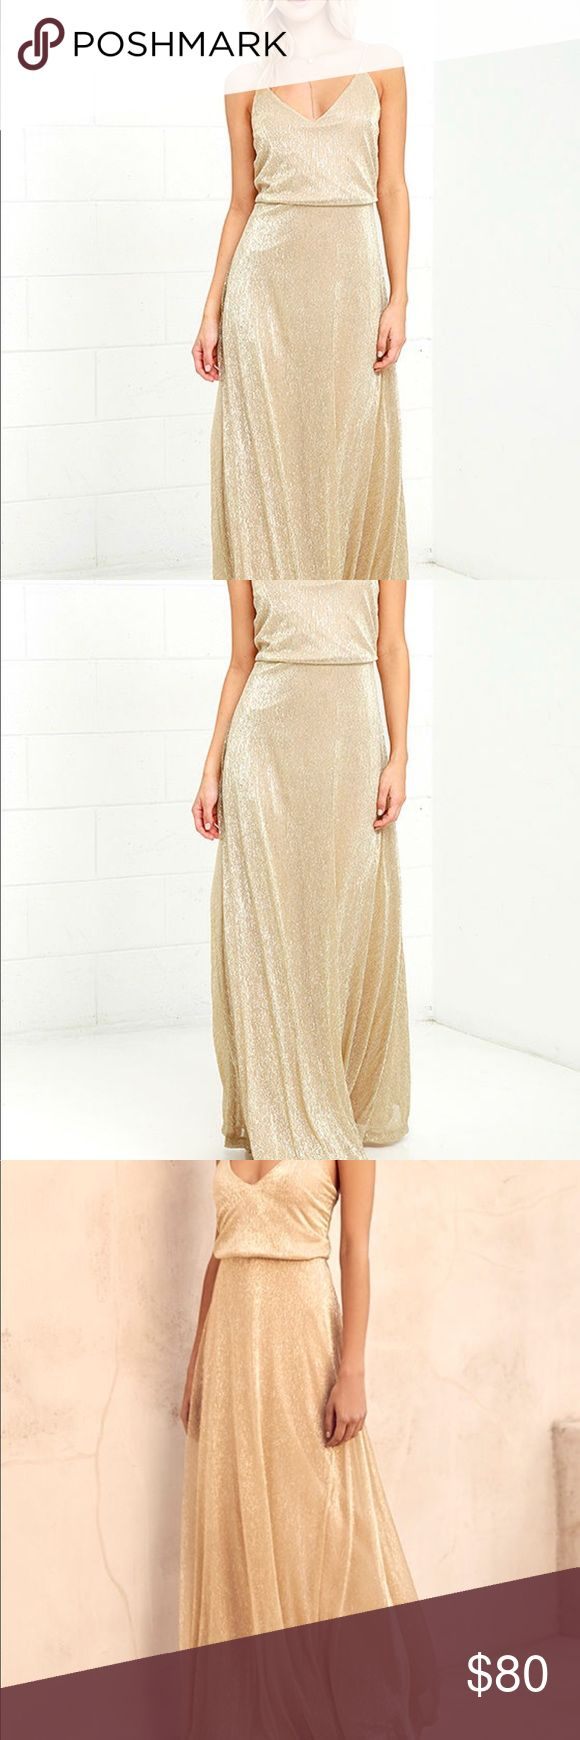 Lulus Gold Maxi Dress Lulus Exclusive! All the glamour seekers know that an amazing night starts with the Friend of the Glam Gold Maxi Dress! Beige knit, with metallic gold threading, sparkles over adjustable spaghetti straps and a relaxed triangle bodice. Fitted waist tops the lovely maxi skirt. Hidden back zipper with clasp. Fully lined. Self: 55% Metallic, 45% Polyester. Lining: 100% Polyester. Hand Wash Cold. Imported. Only worn once. Excellent condition lulus Dresses Maxi